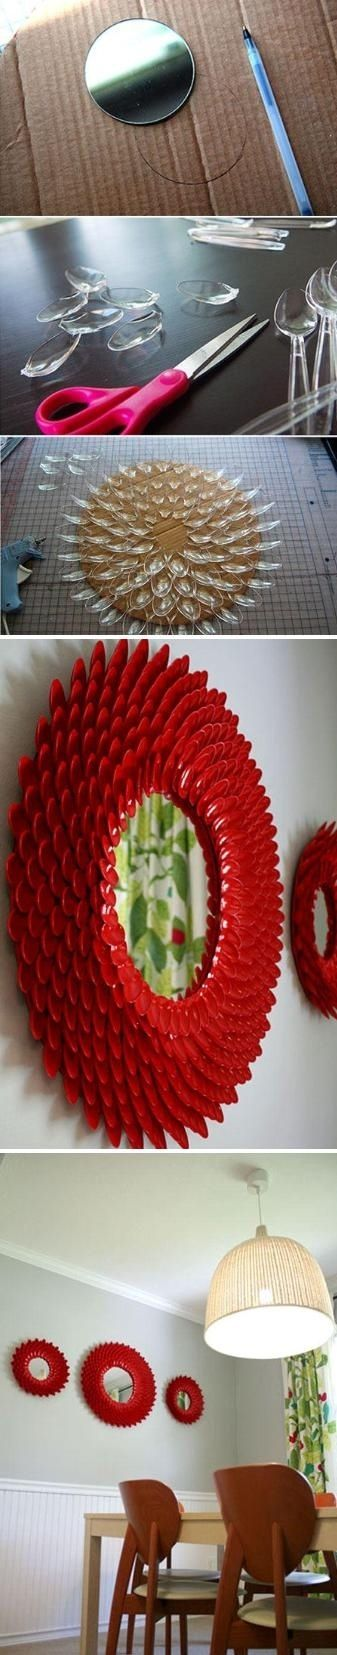 DIY Mirror From Plastic Spoons Pictures Photos